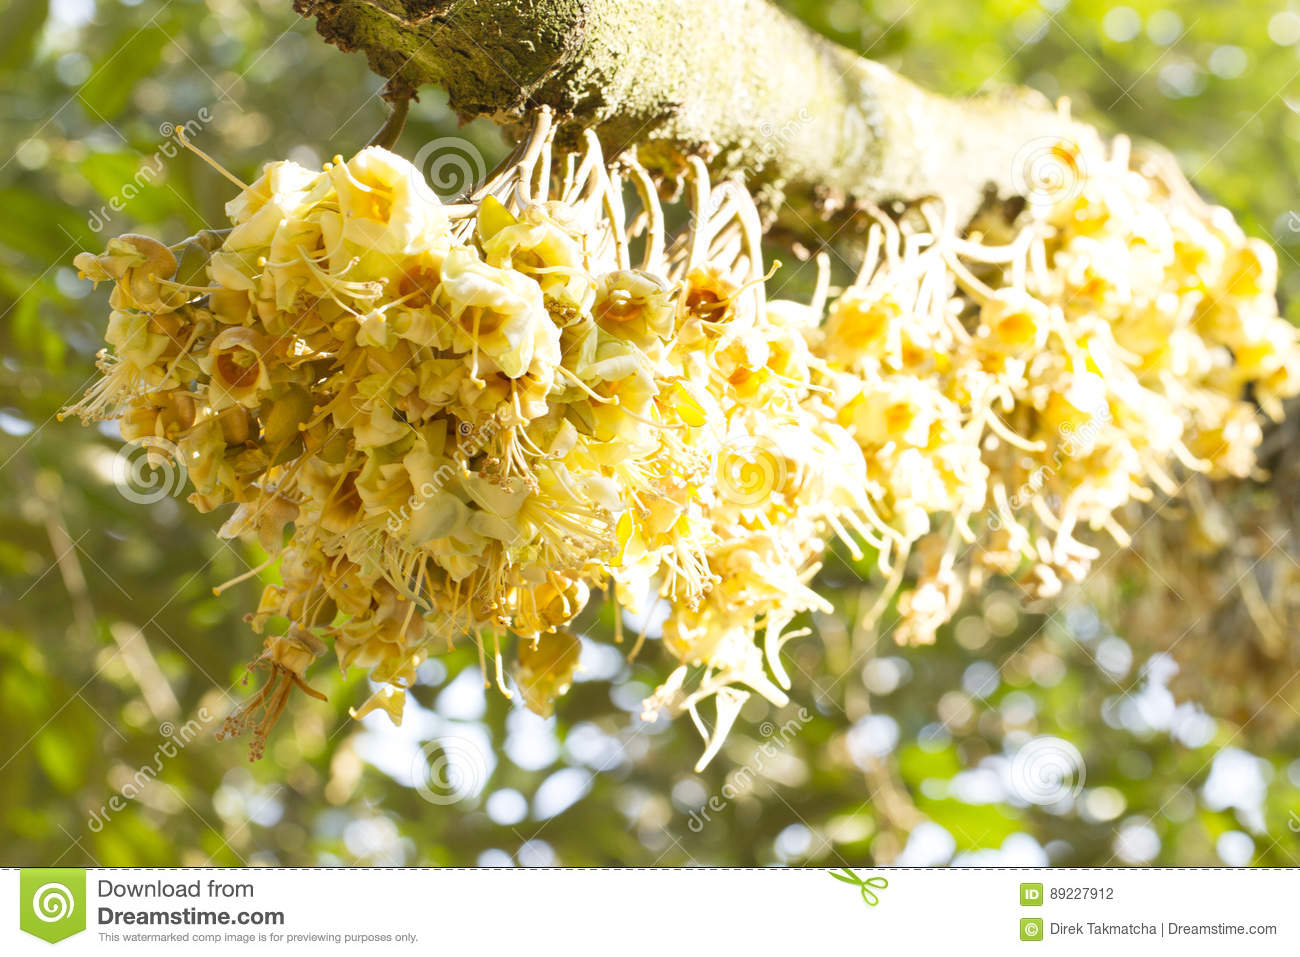 Durian Flowers Bud On Durian Tree Stock Photo - Image of